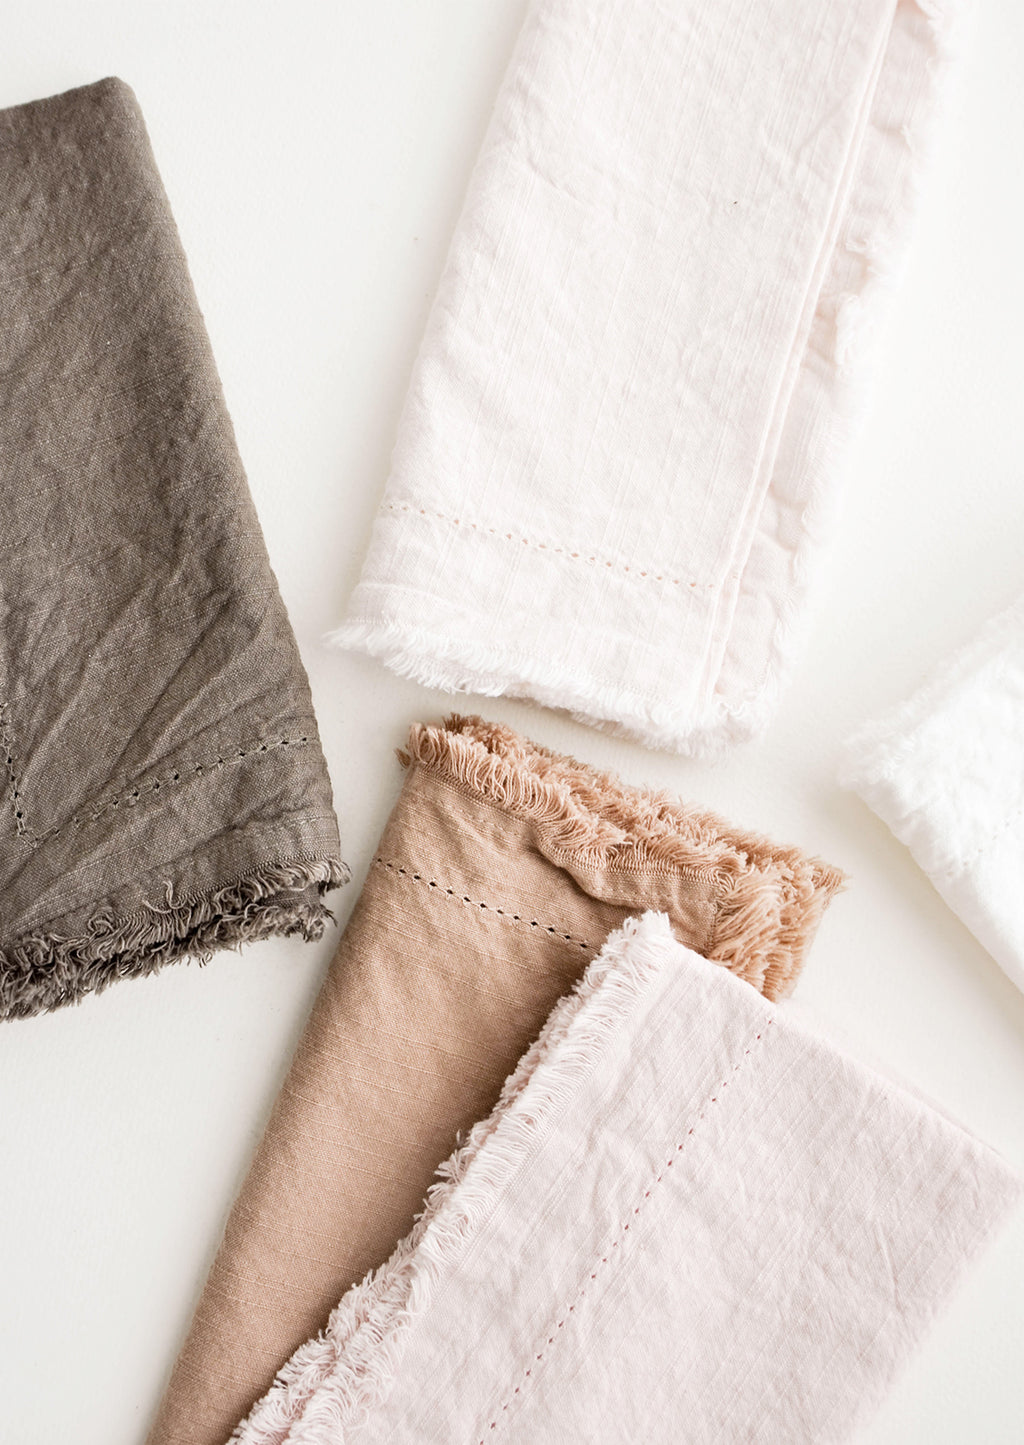 2:  Cotton Napkins with frayed edges in browns and pinks.